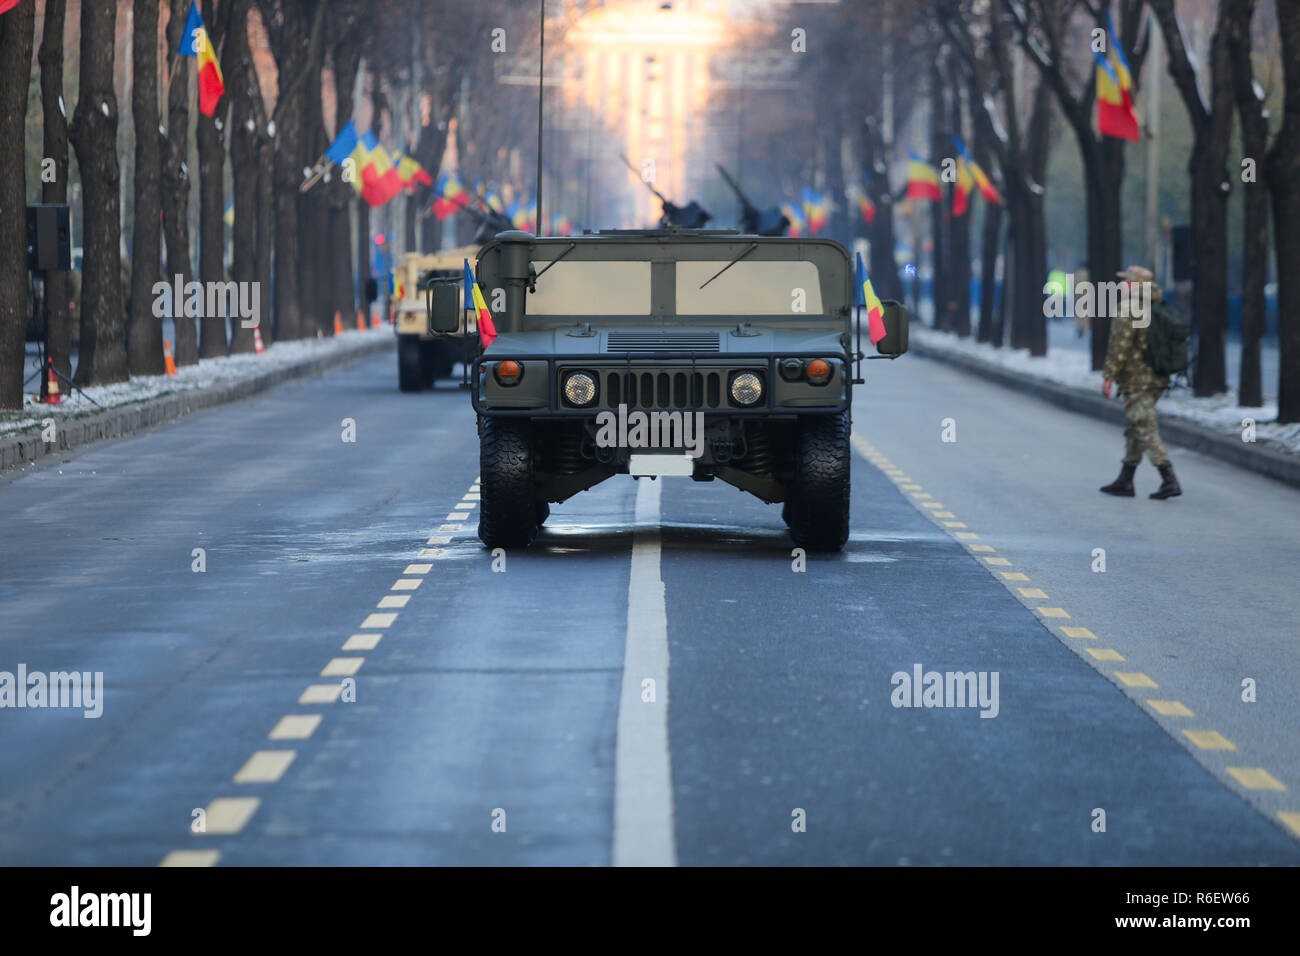 BUCHAREST, ROMANIA - December 1, 2018: Humvee military vehicle from the Romanian army at Romanian National Day military parade - Stock Image